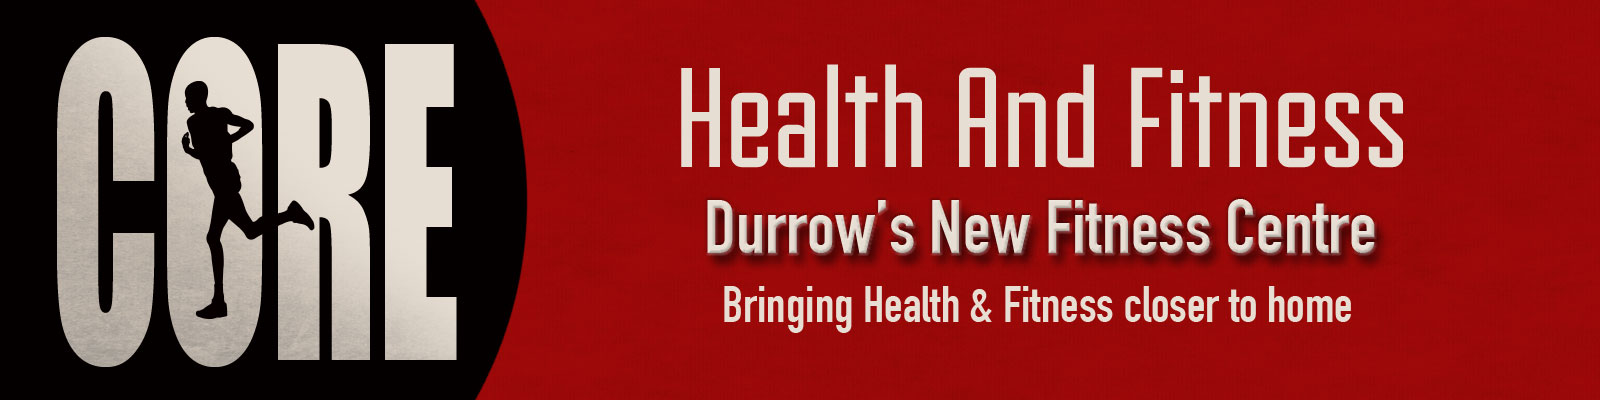 Durrow Fitness Centre